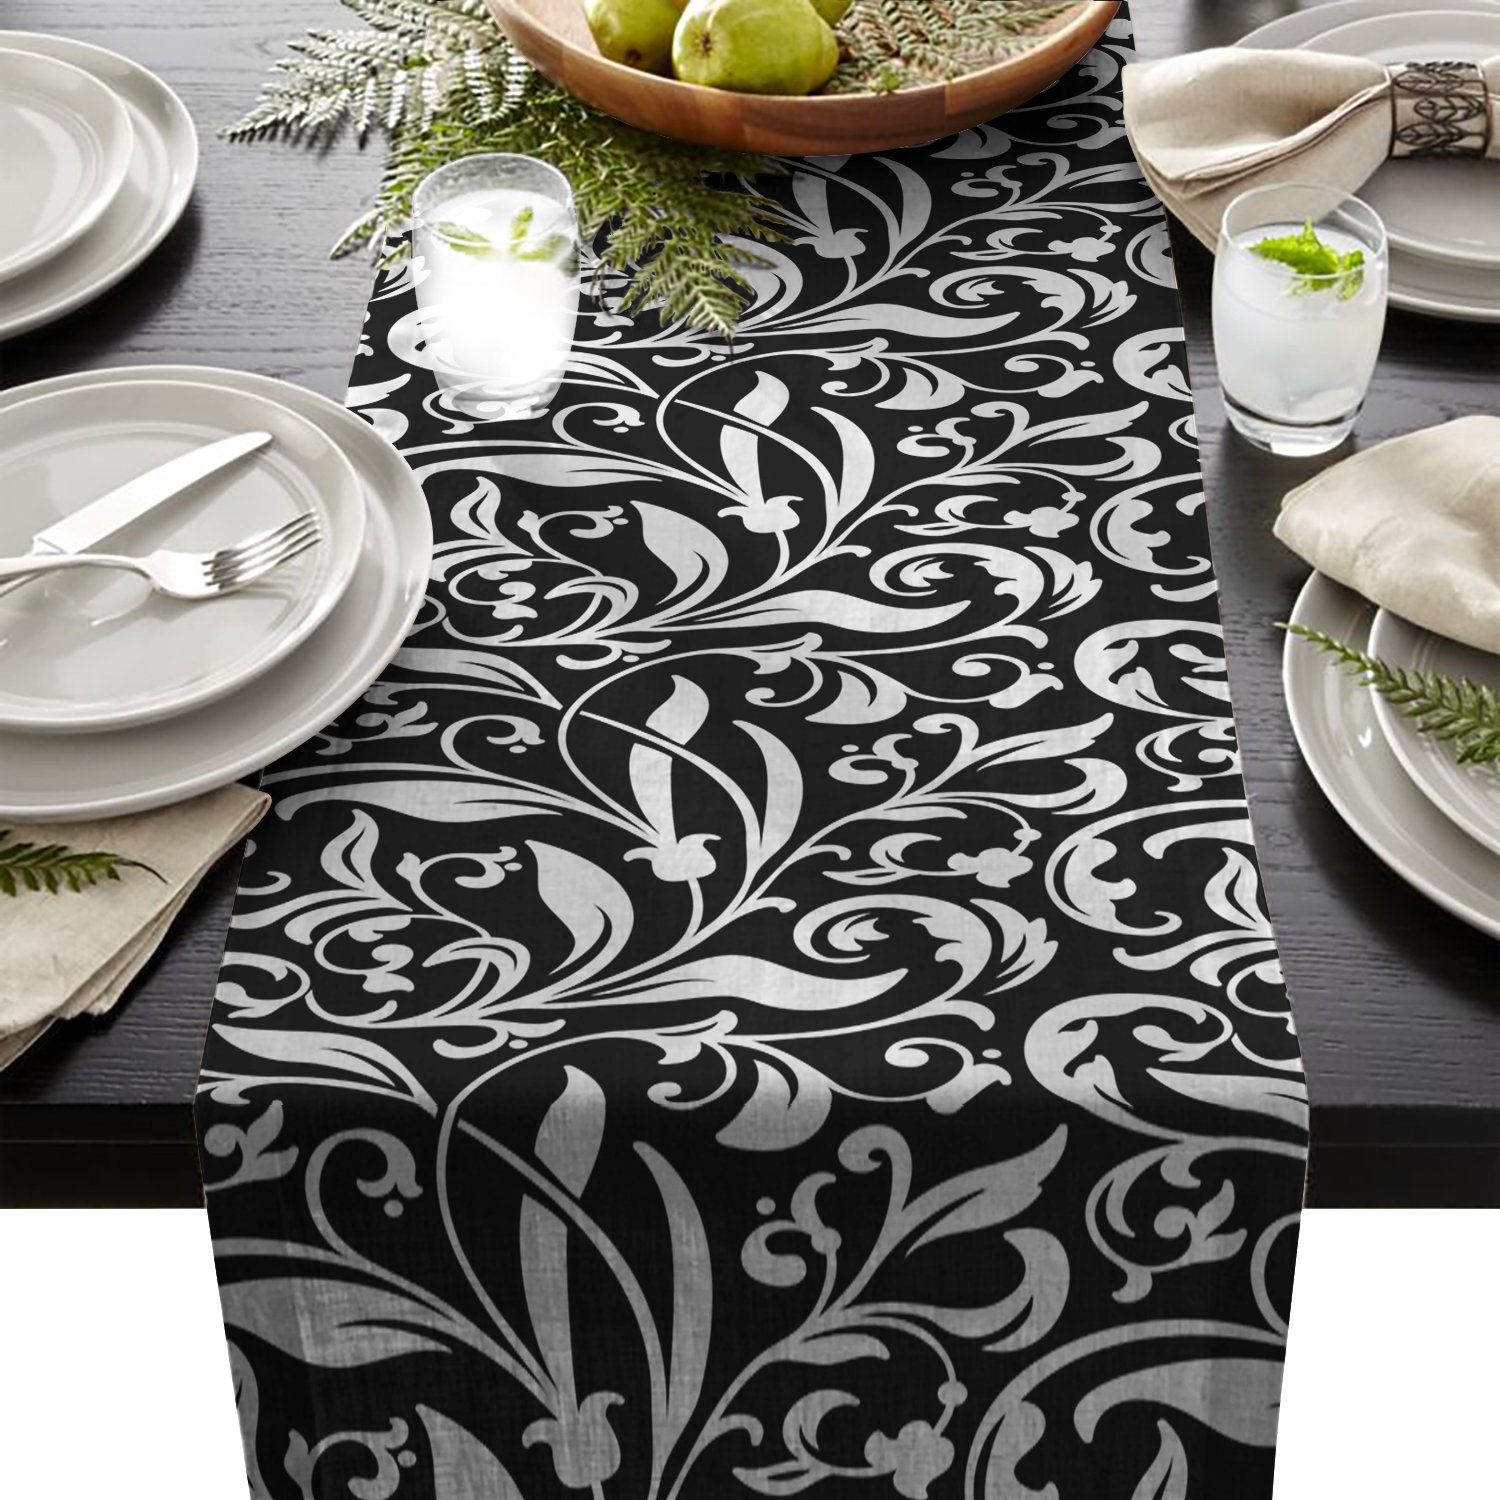 Edwiinsa Vintage Plant and Geometric Table Runner For Dining Table Kitchen Wedding Party Decoration Table Top Home Decor 18 x 72 Inch LNTT20180613EDTK-CRY-1410-zq-5